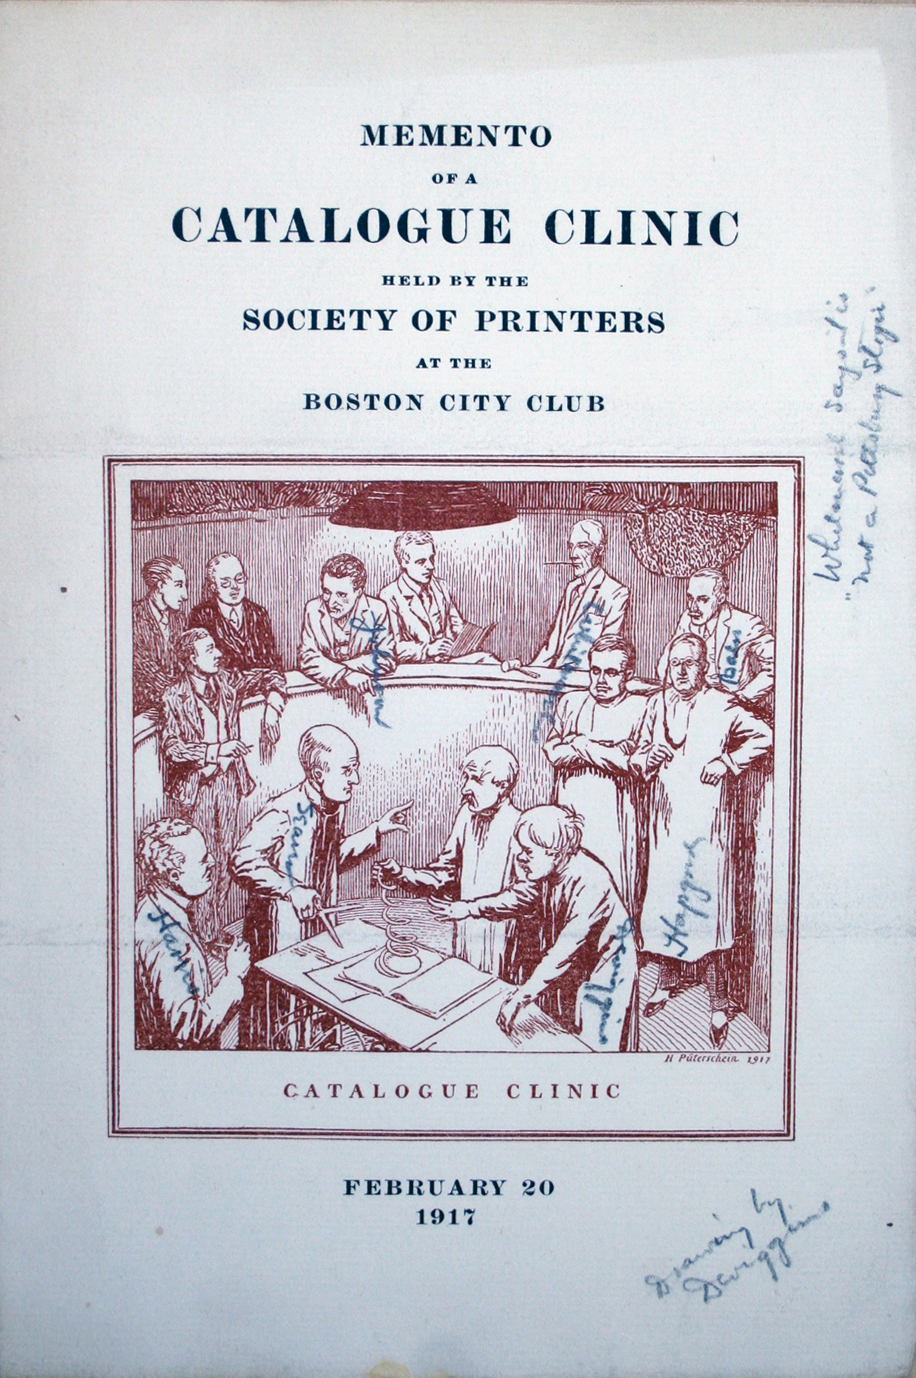 Memento of a Catalogue Clinic. Illustration by W.A. Dwiggins. C.F. Whitmarsh is in the back row, second from the right.